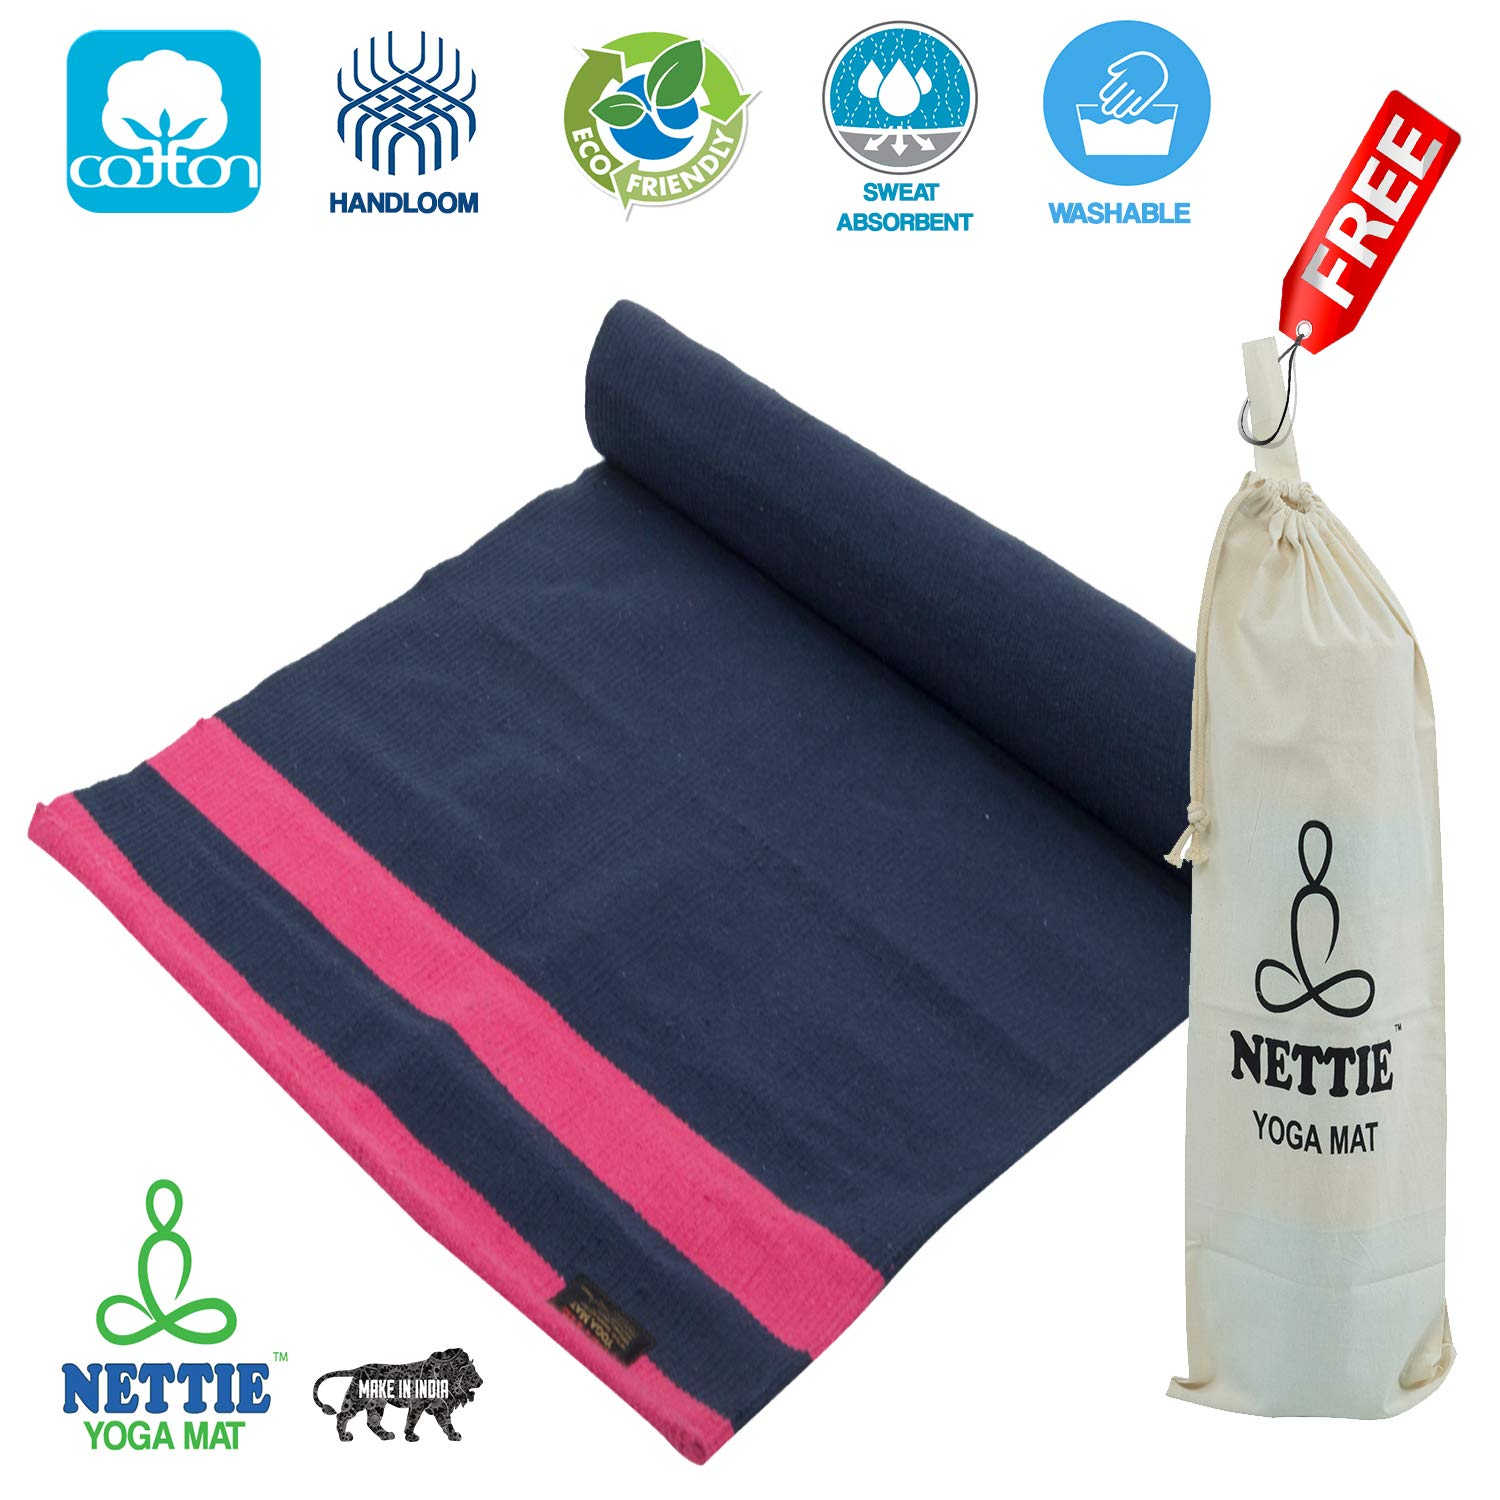 Eco Friendly Cotton Yoga Mats Buy Now And Get Special